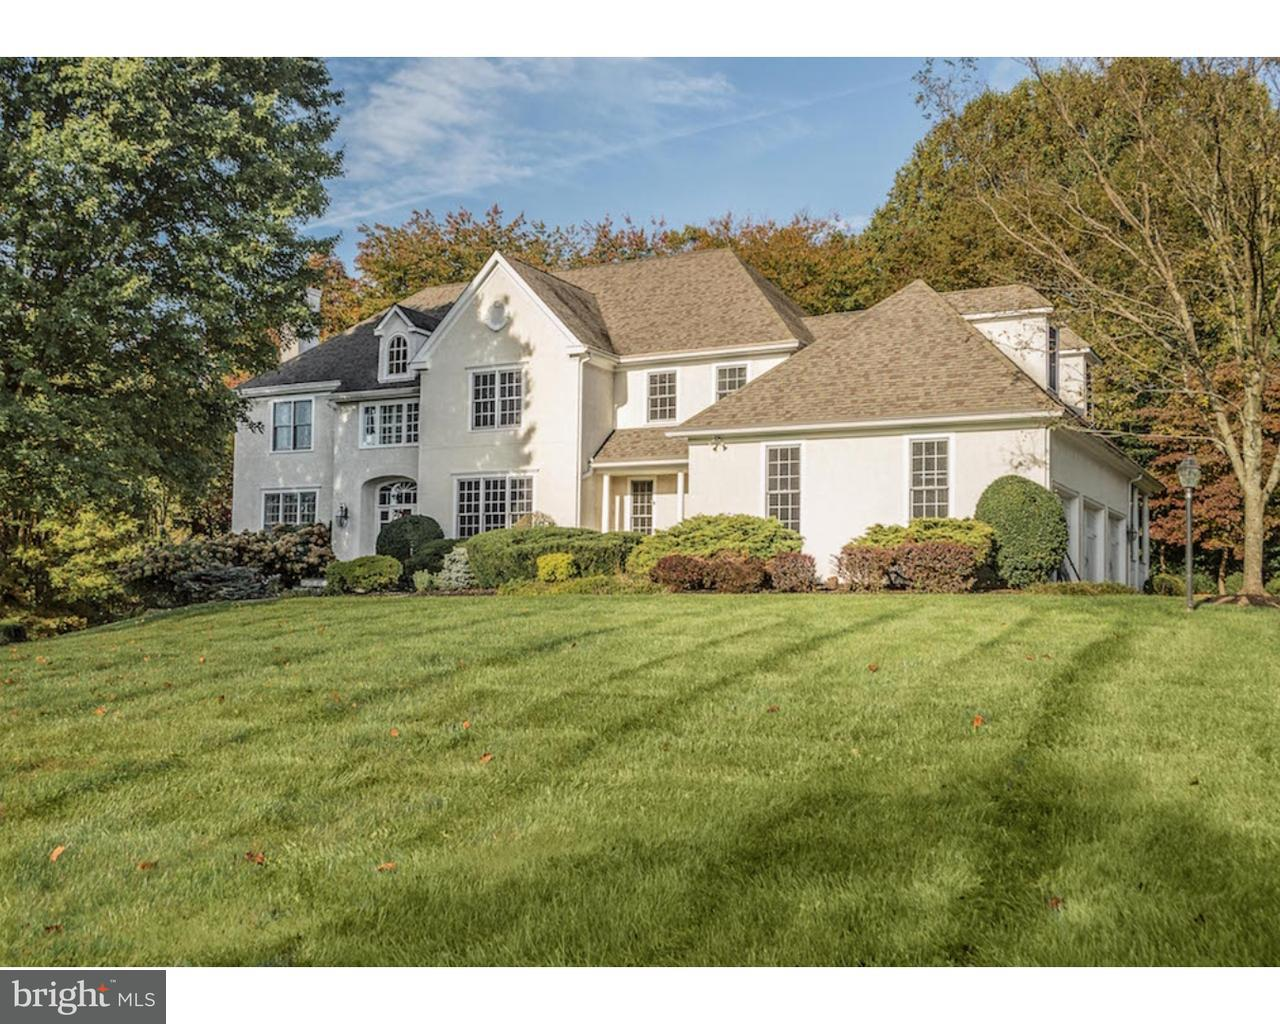 Single Family Home for Sale at 102 E WYNLEIGH Drive Greenville, Delaware 19807 United States